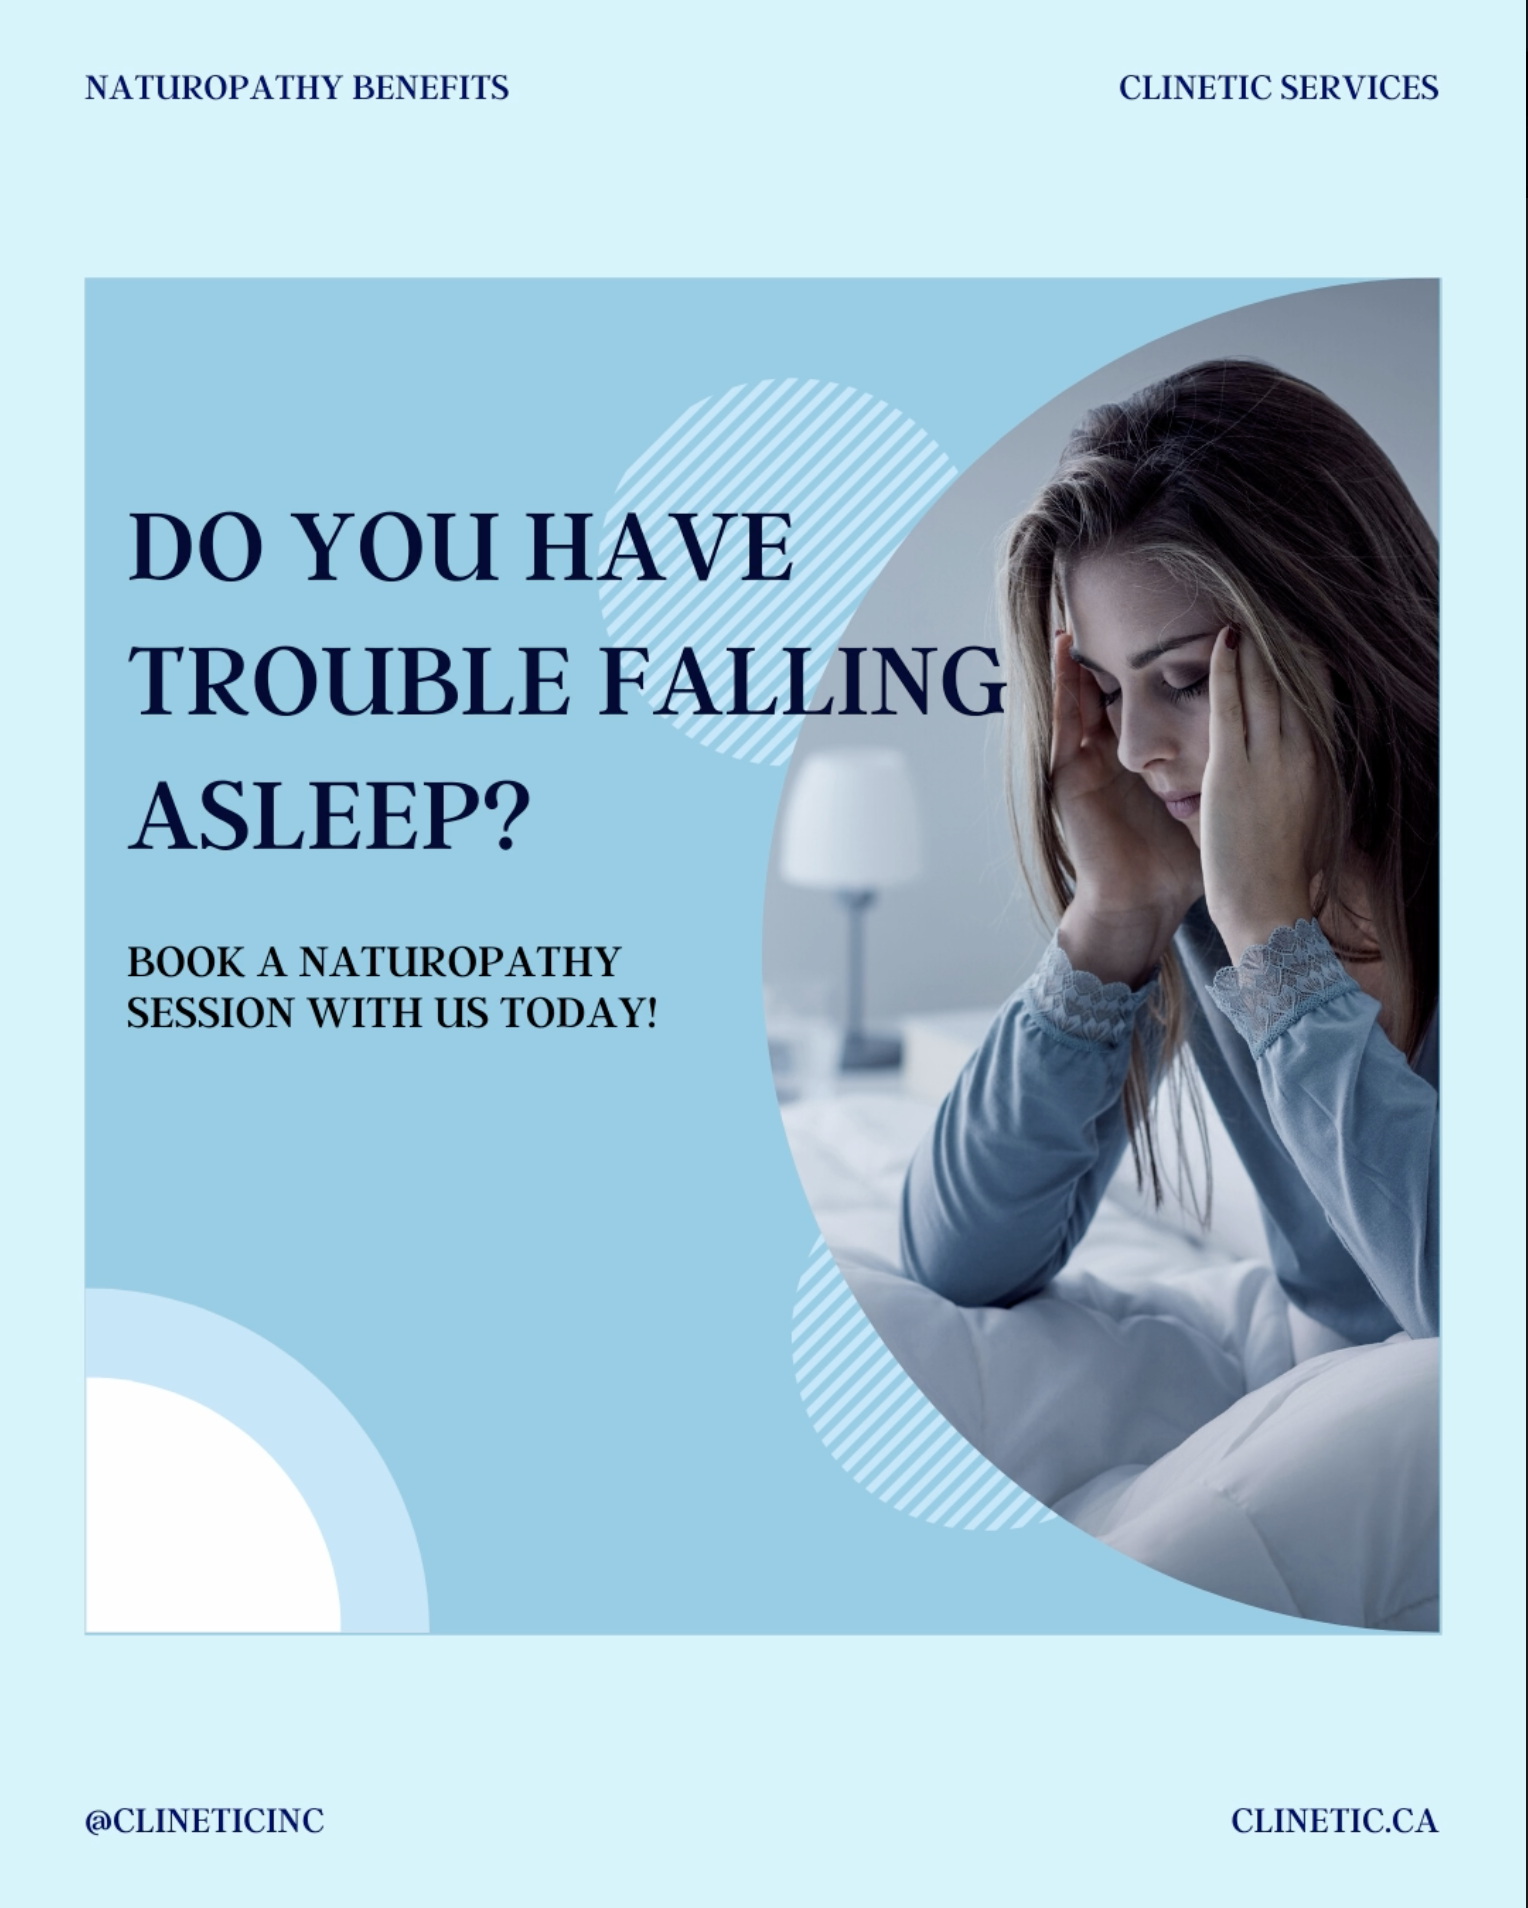 Do you have trouble falling asleep?(insomnia)